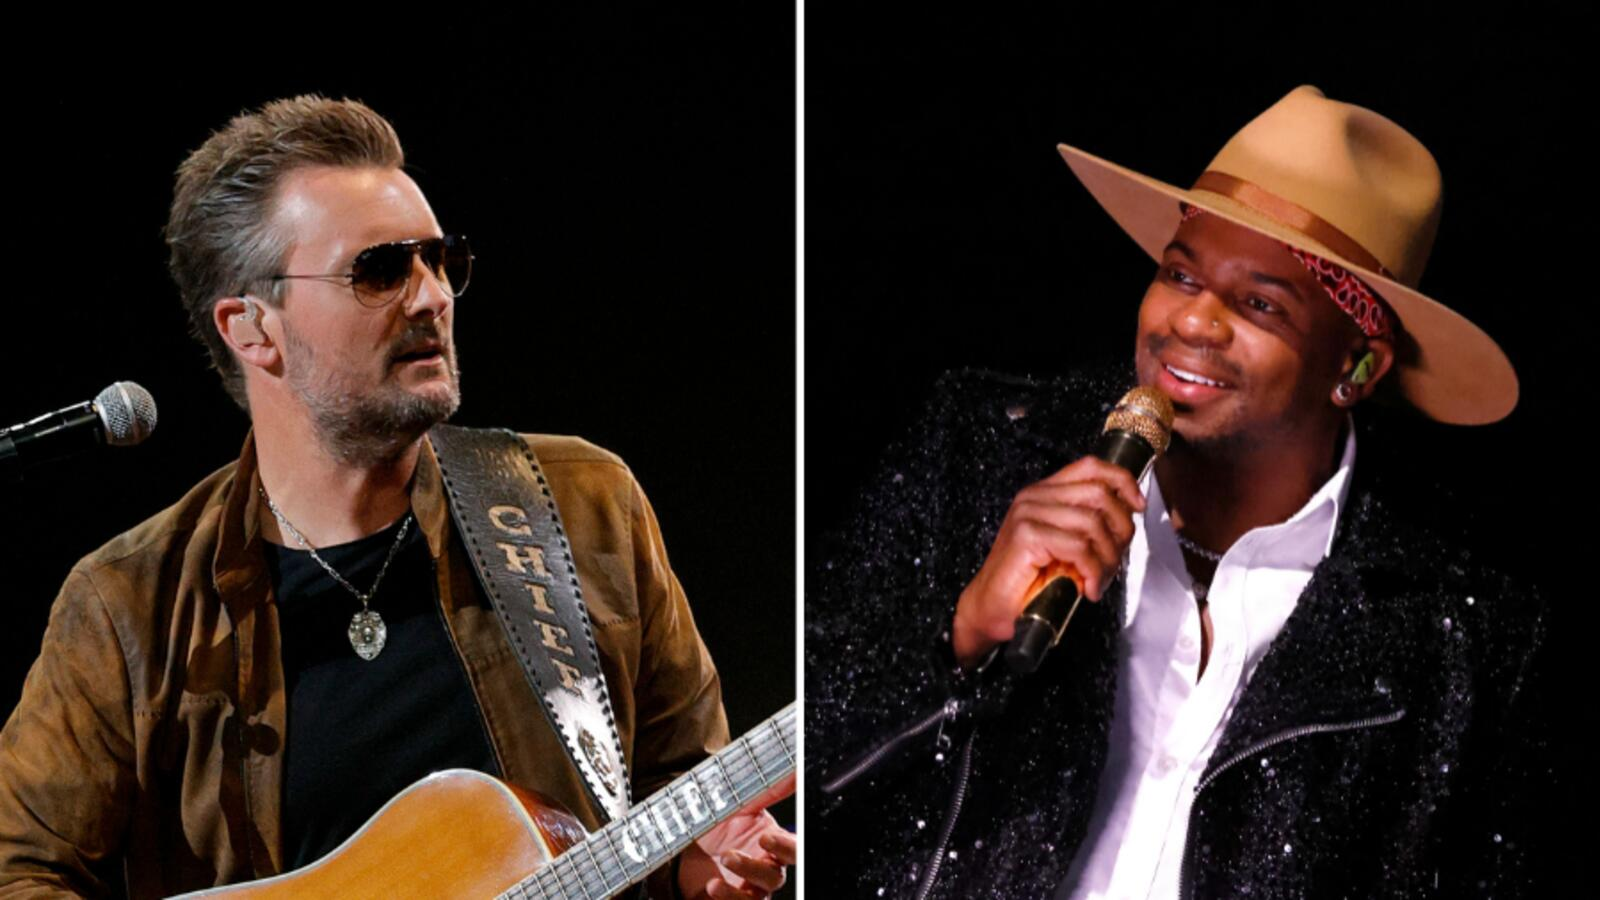 CMA Awards Announce Eric Church, Jimmie Allen, And More As 2021 Performers